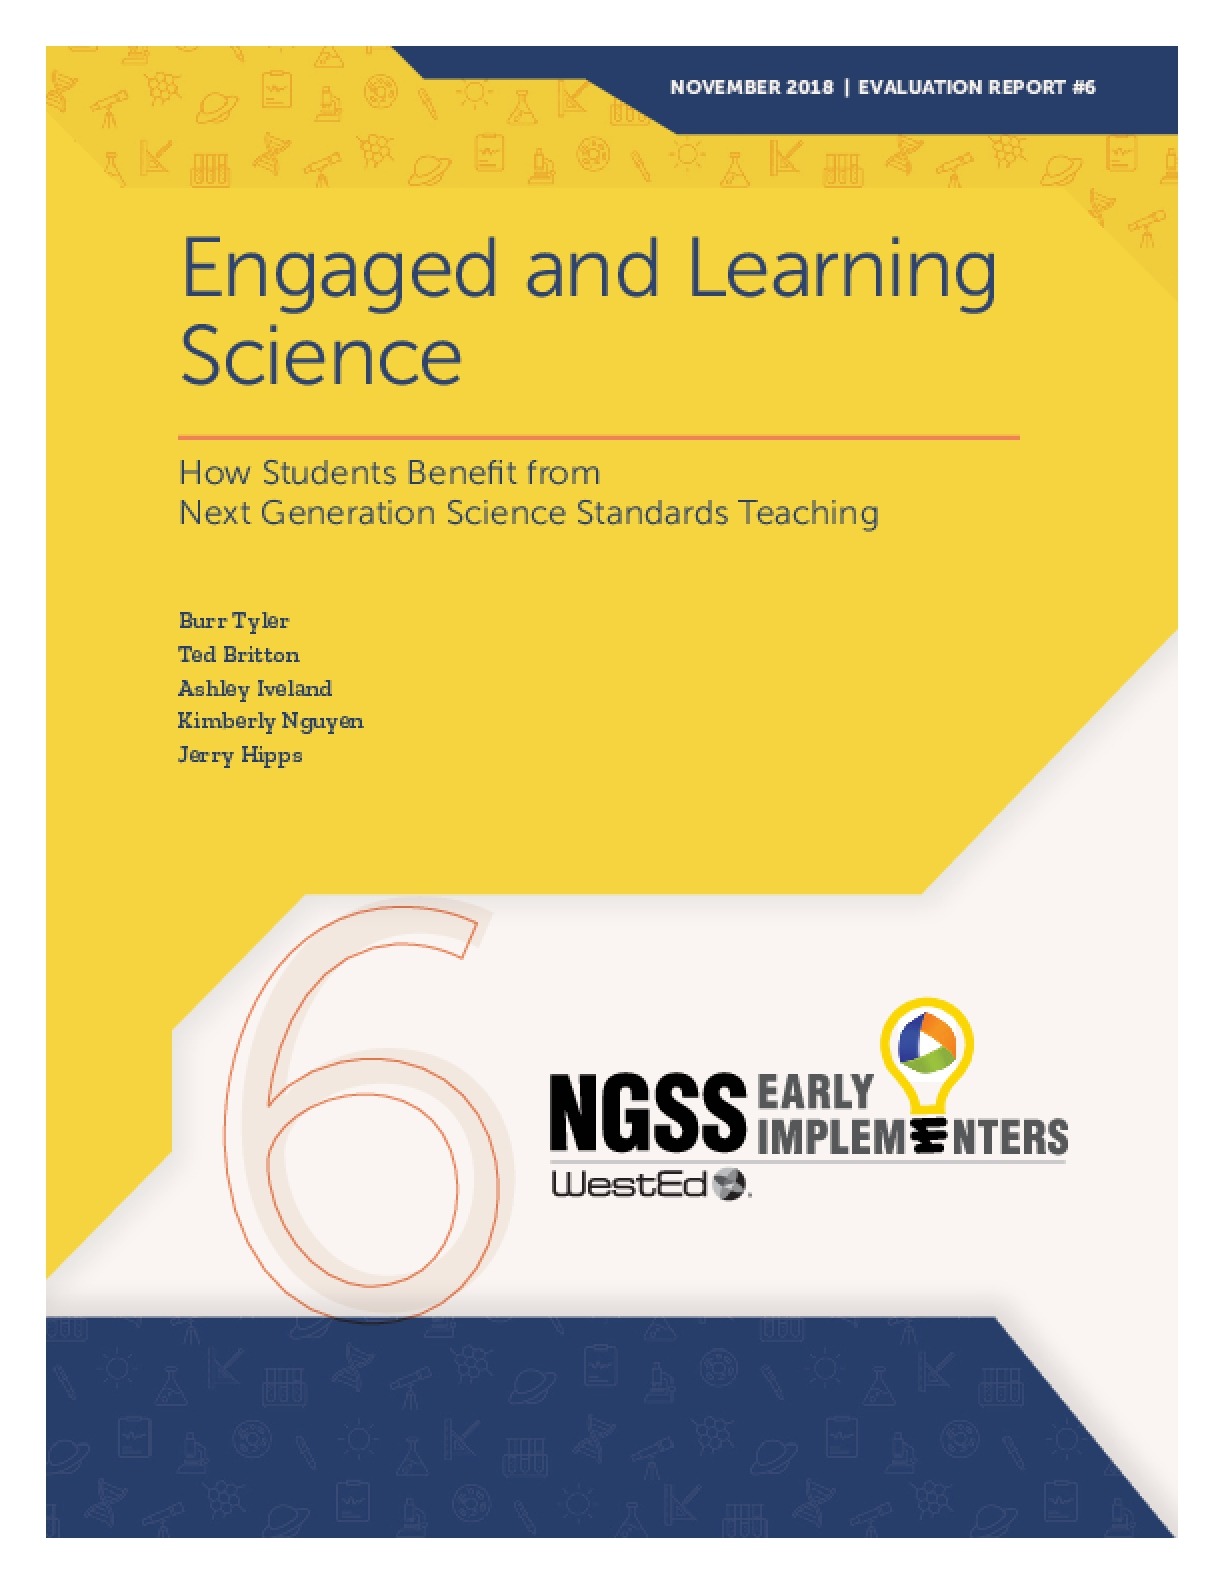 Engaged and Learning Science: How Students Benefit from Next Generation Science Standards Teaching